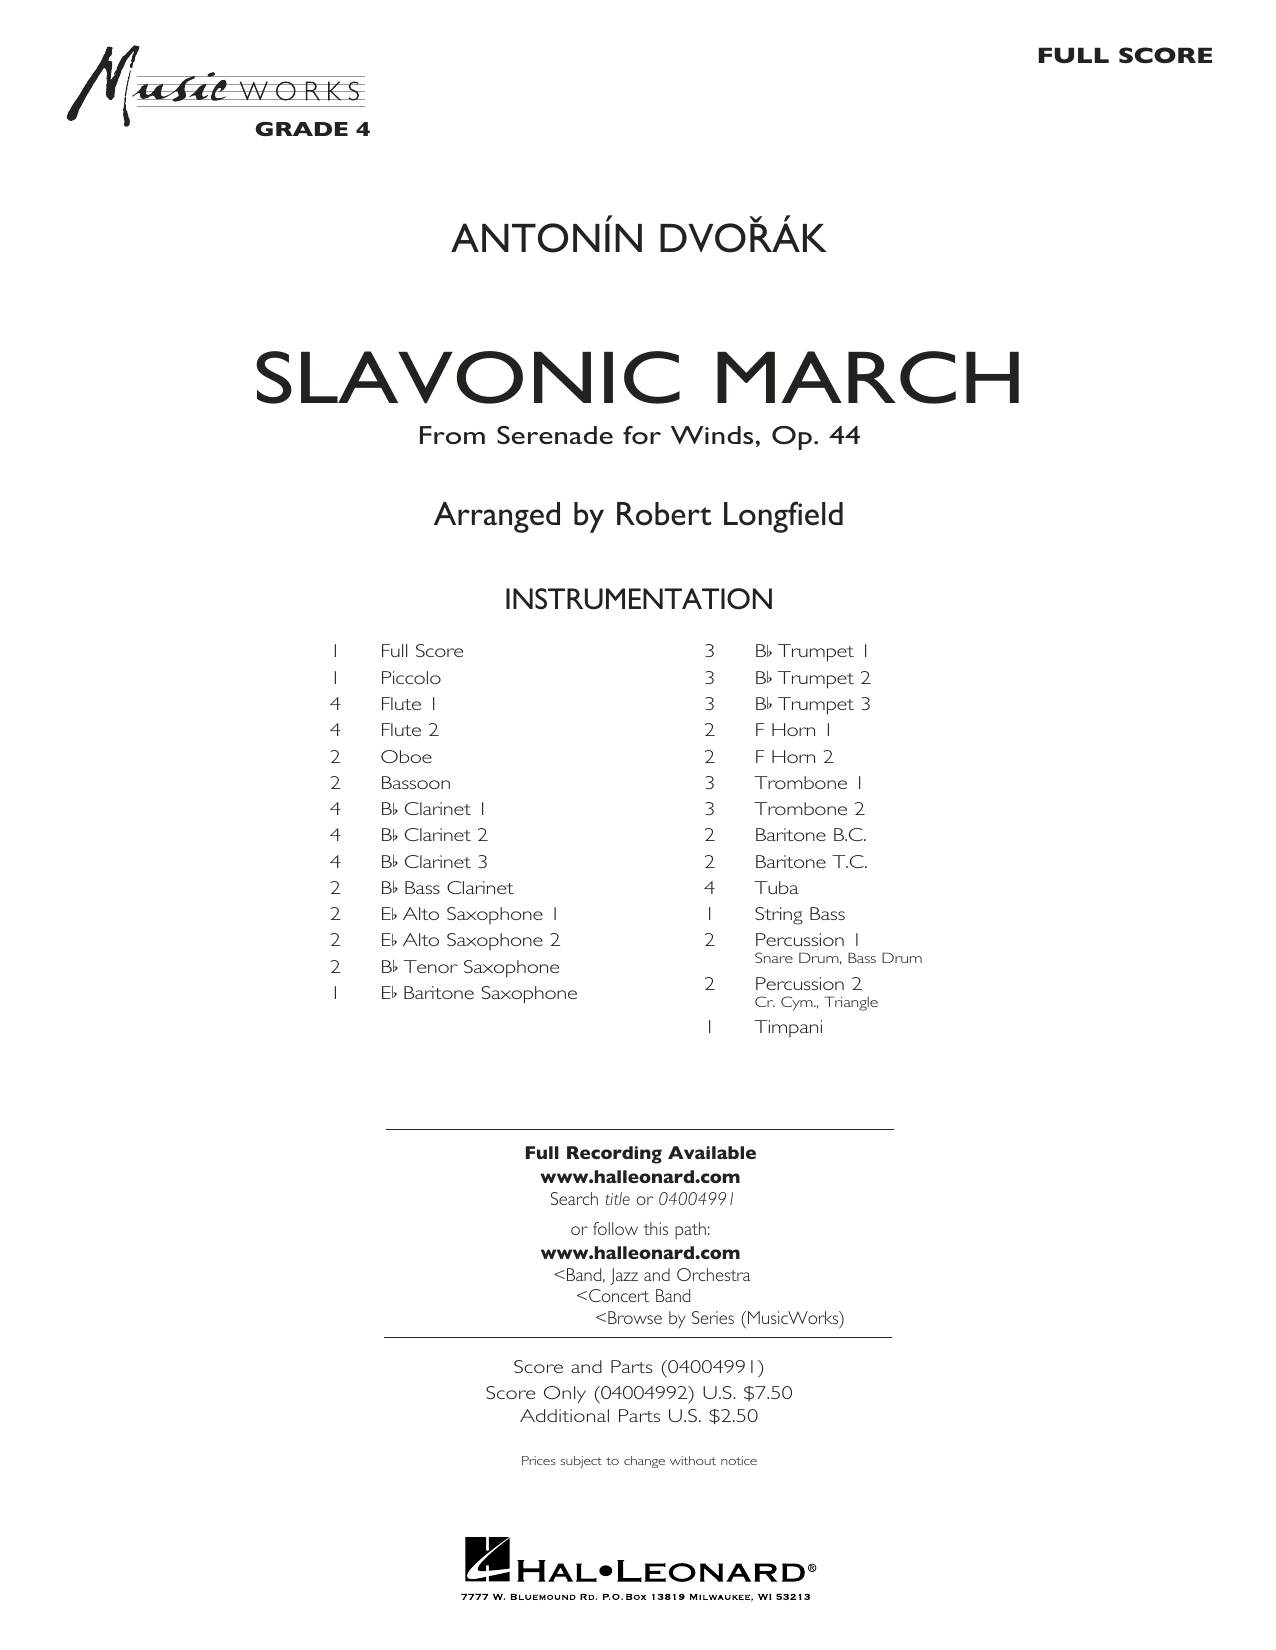 Slavonic March (from Serenade for Winds, Op. 44) - Conductor Score (Full Score) Sheet Music